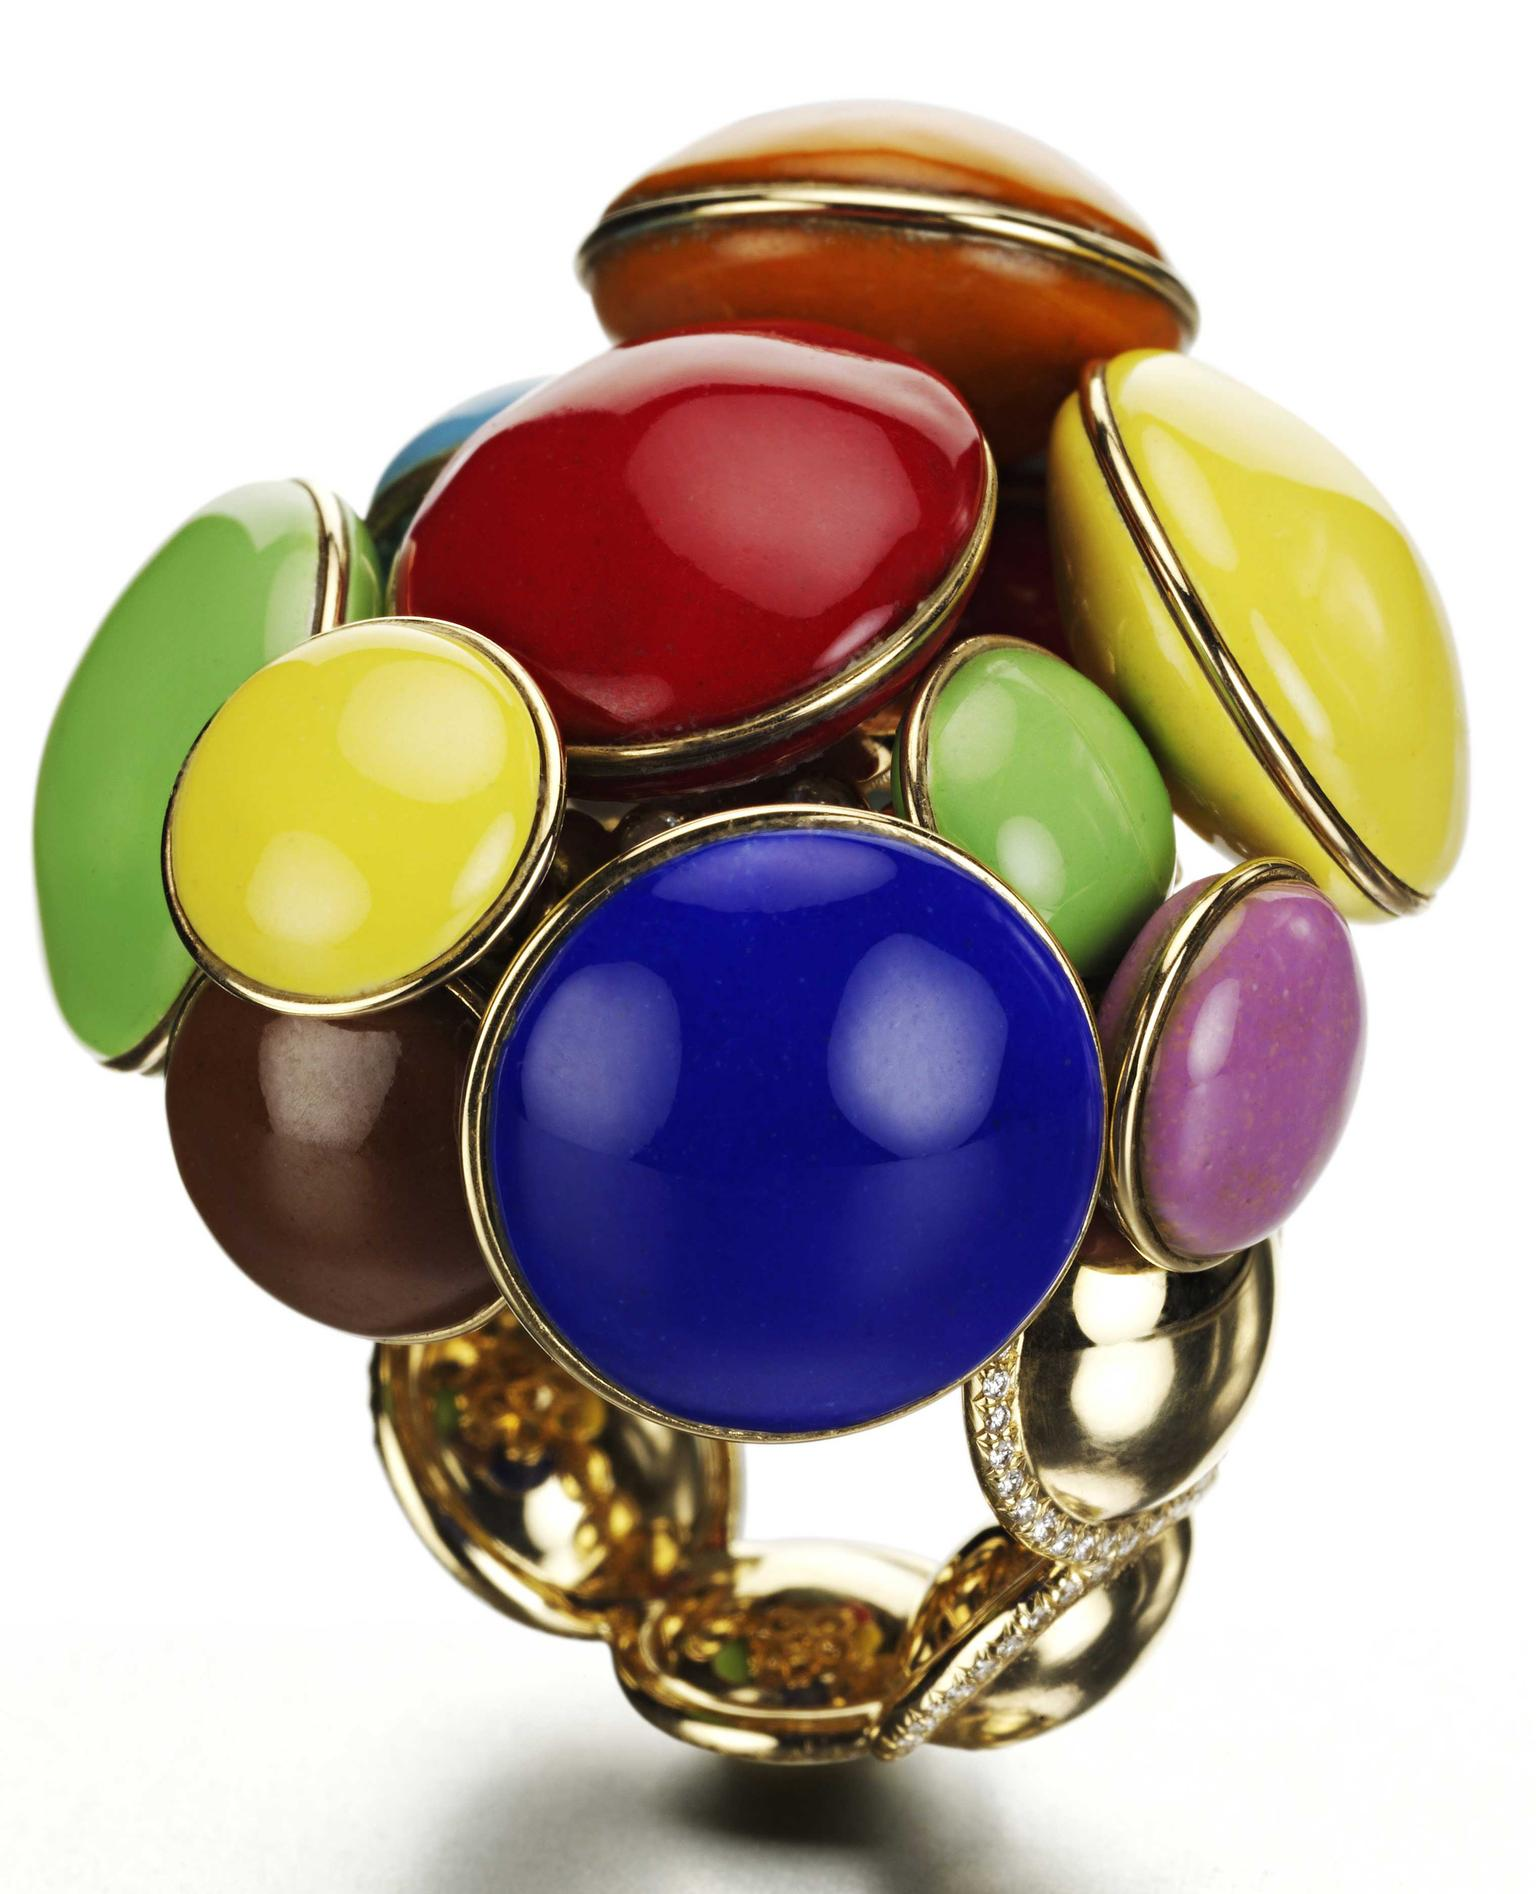 MPL-2013.-Suzanne-Syz-Sarl.-Smarties-Rings..jpg